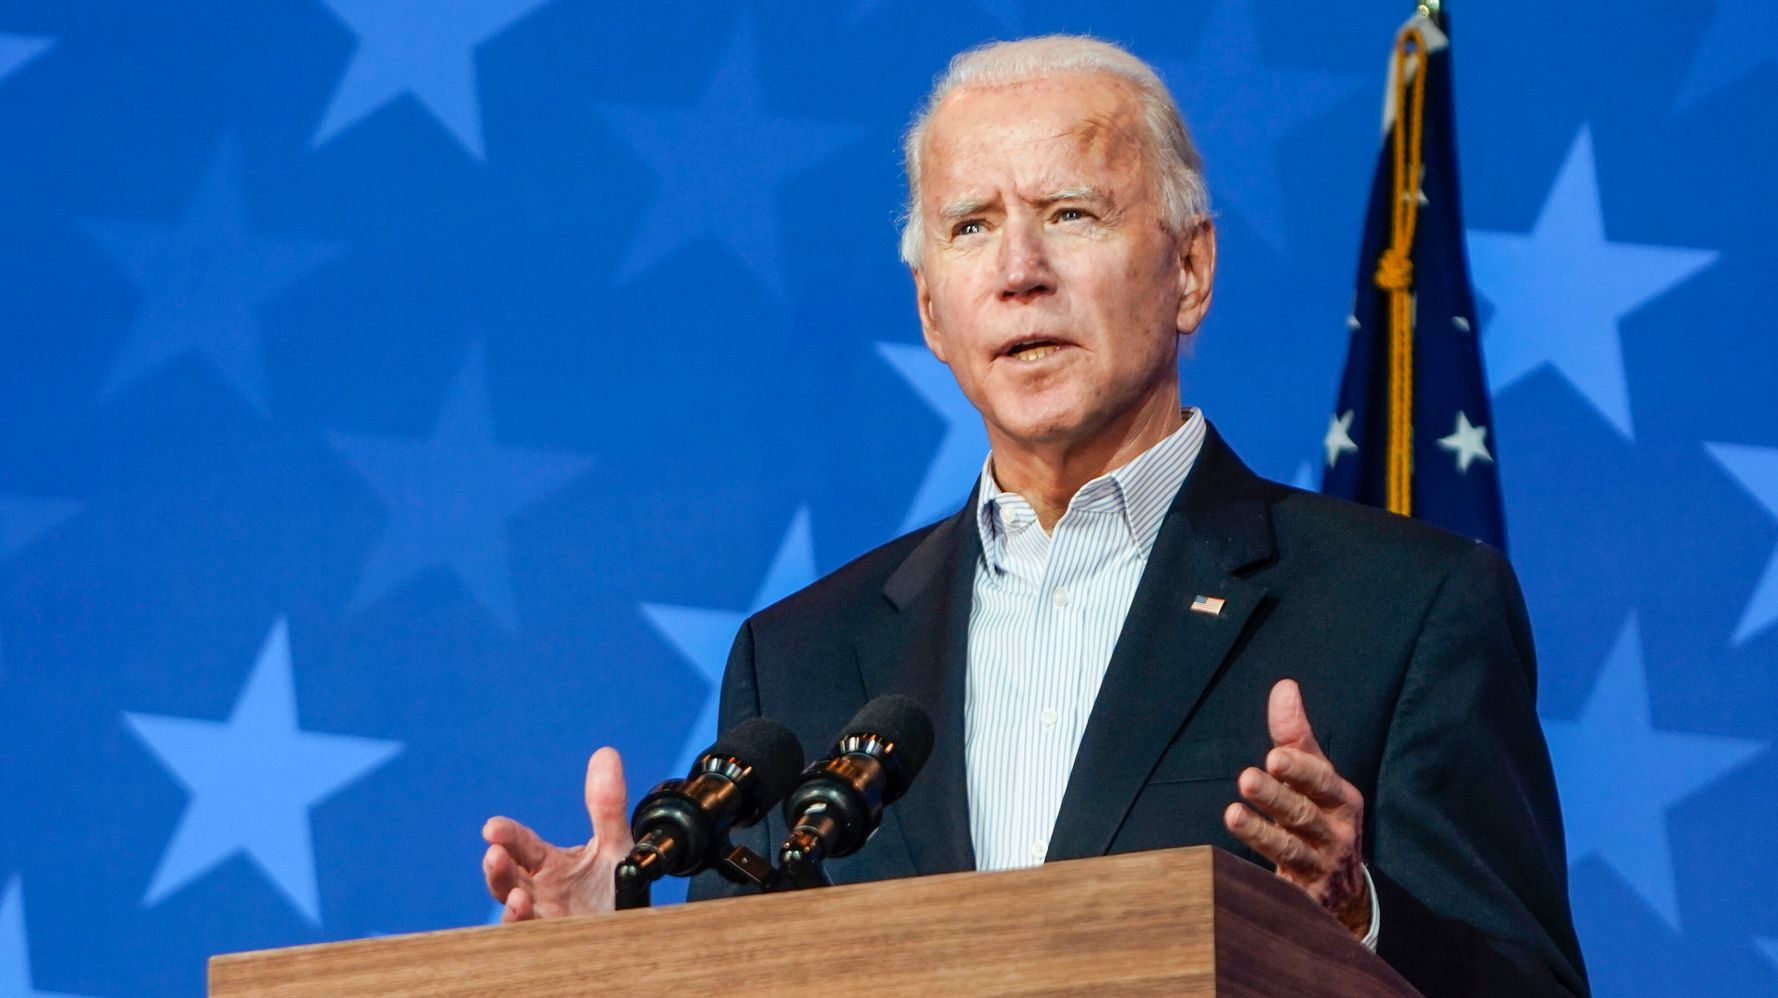 Joe Biden Had To Beat Donald Trump With One Hand Tied Behind His Back